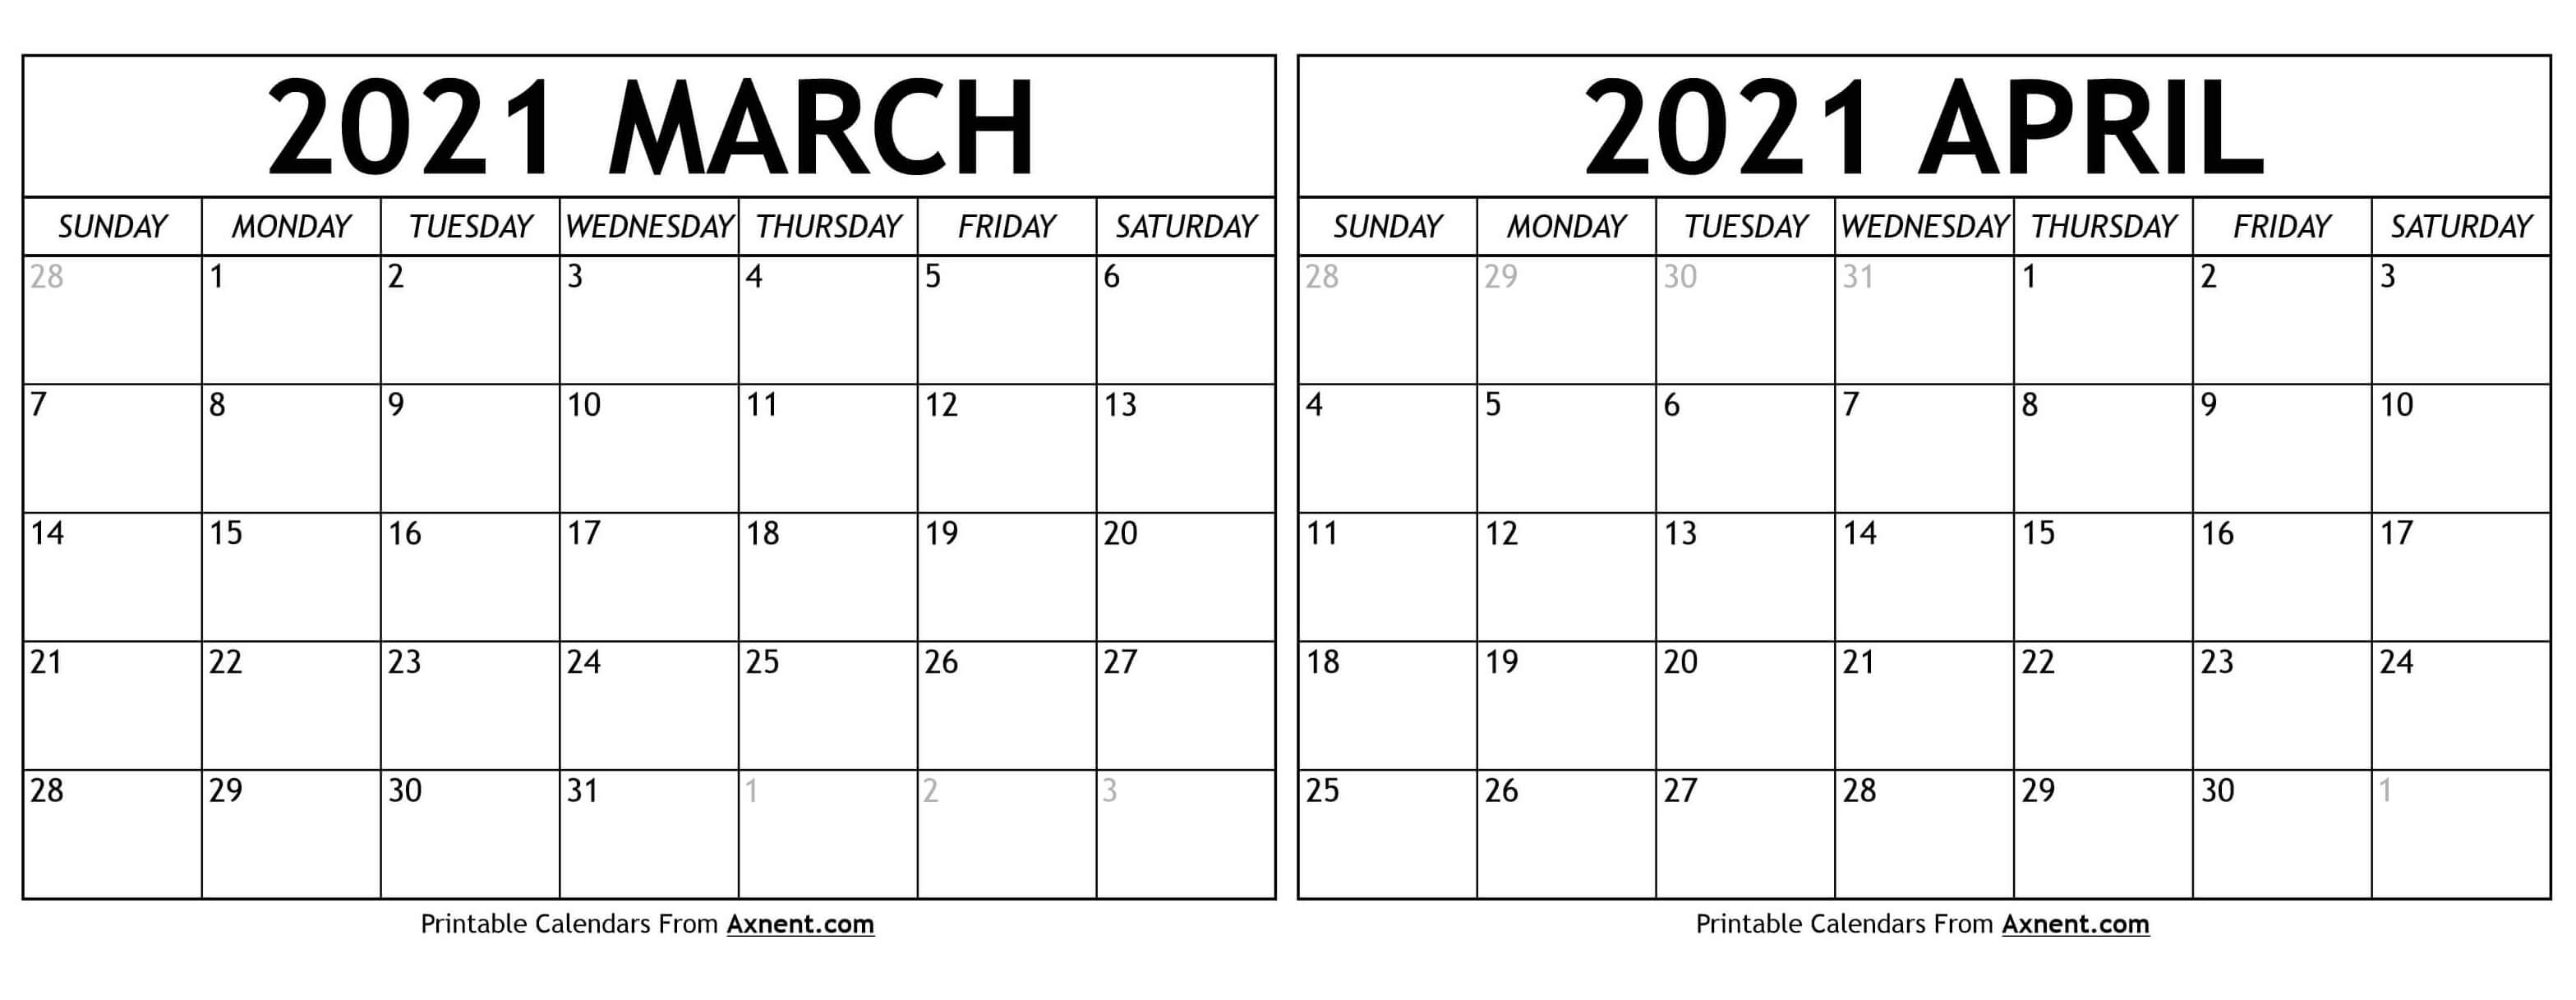 March And April Calendar 2021 March April 2021 Calendar Templates   Time Management Tools March